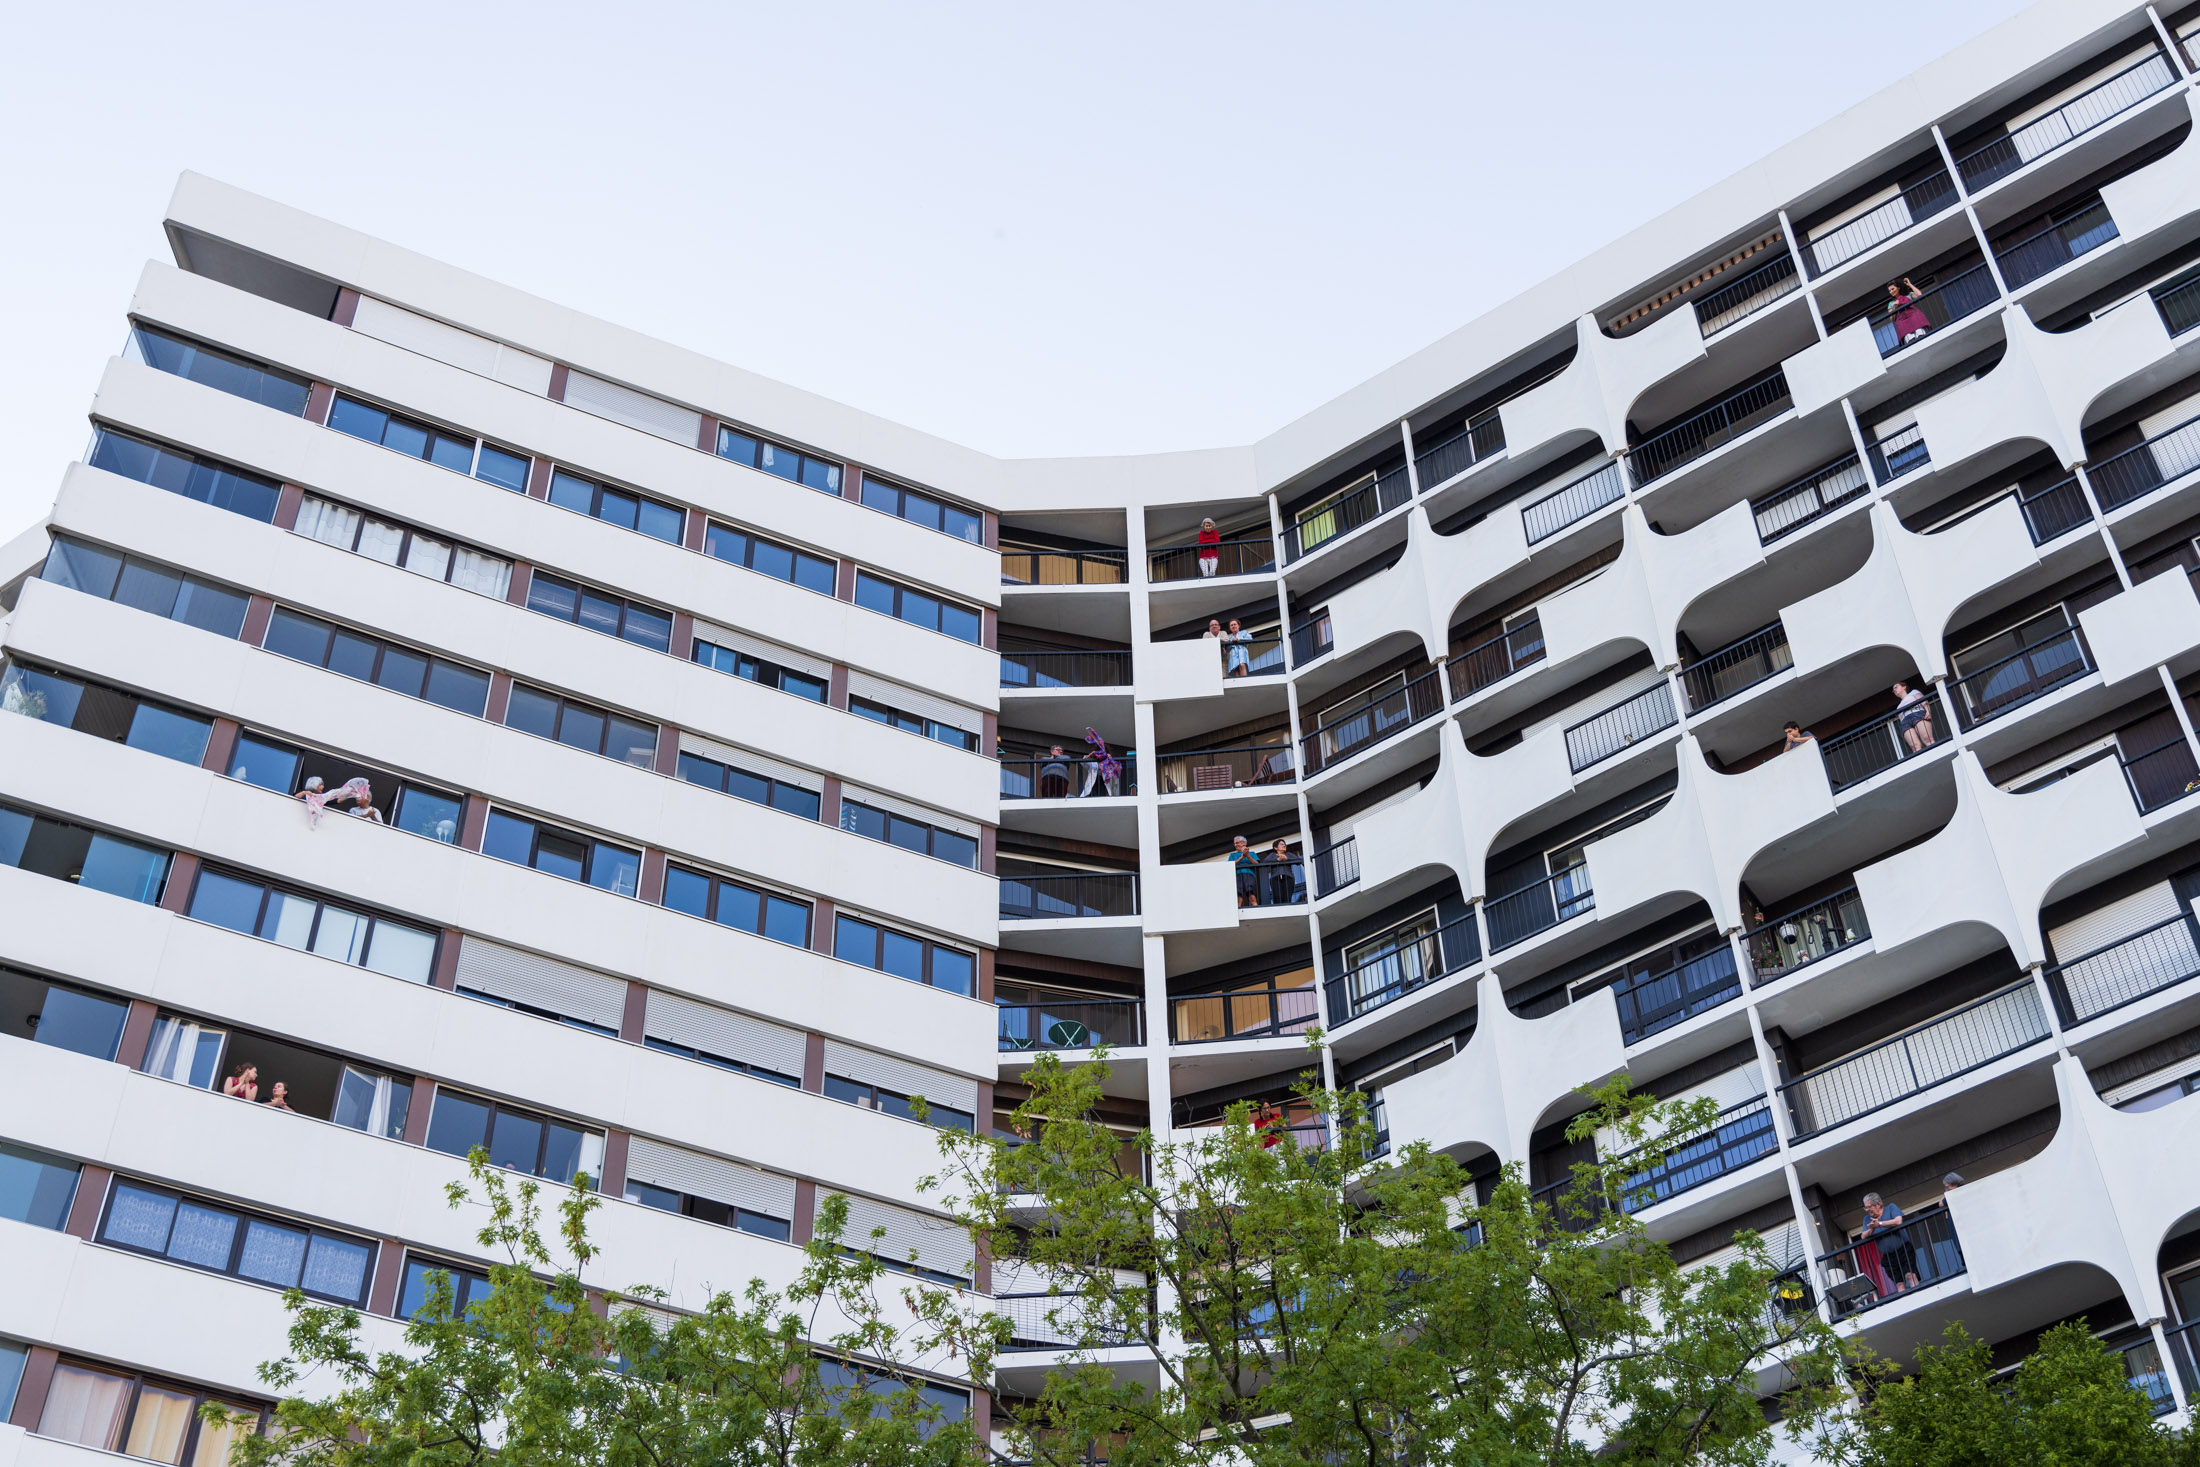 Everyday at 8 pm people are applauding from their windows and balconies to thank the medical staff. Nantes, France - April 22nd 2020.Tous les soirs a 20h, les gens sortent a leurs fenetres et balcons pour applaudir le personnel soignant. Nantes, France - 22 avril 2020.